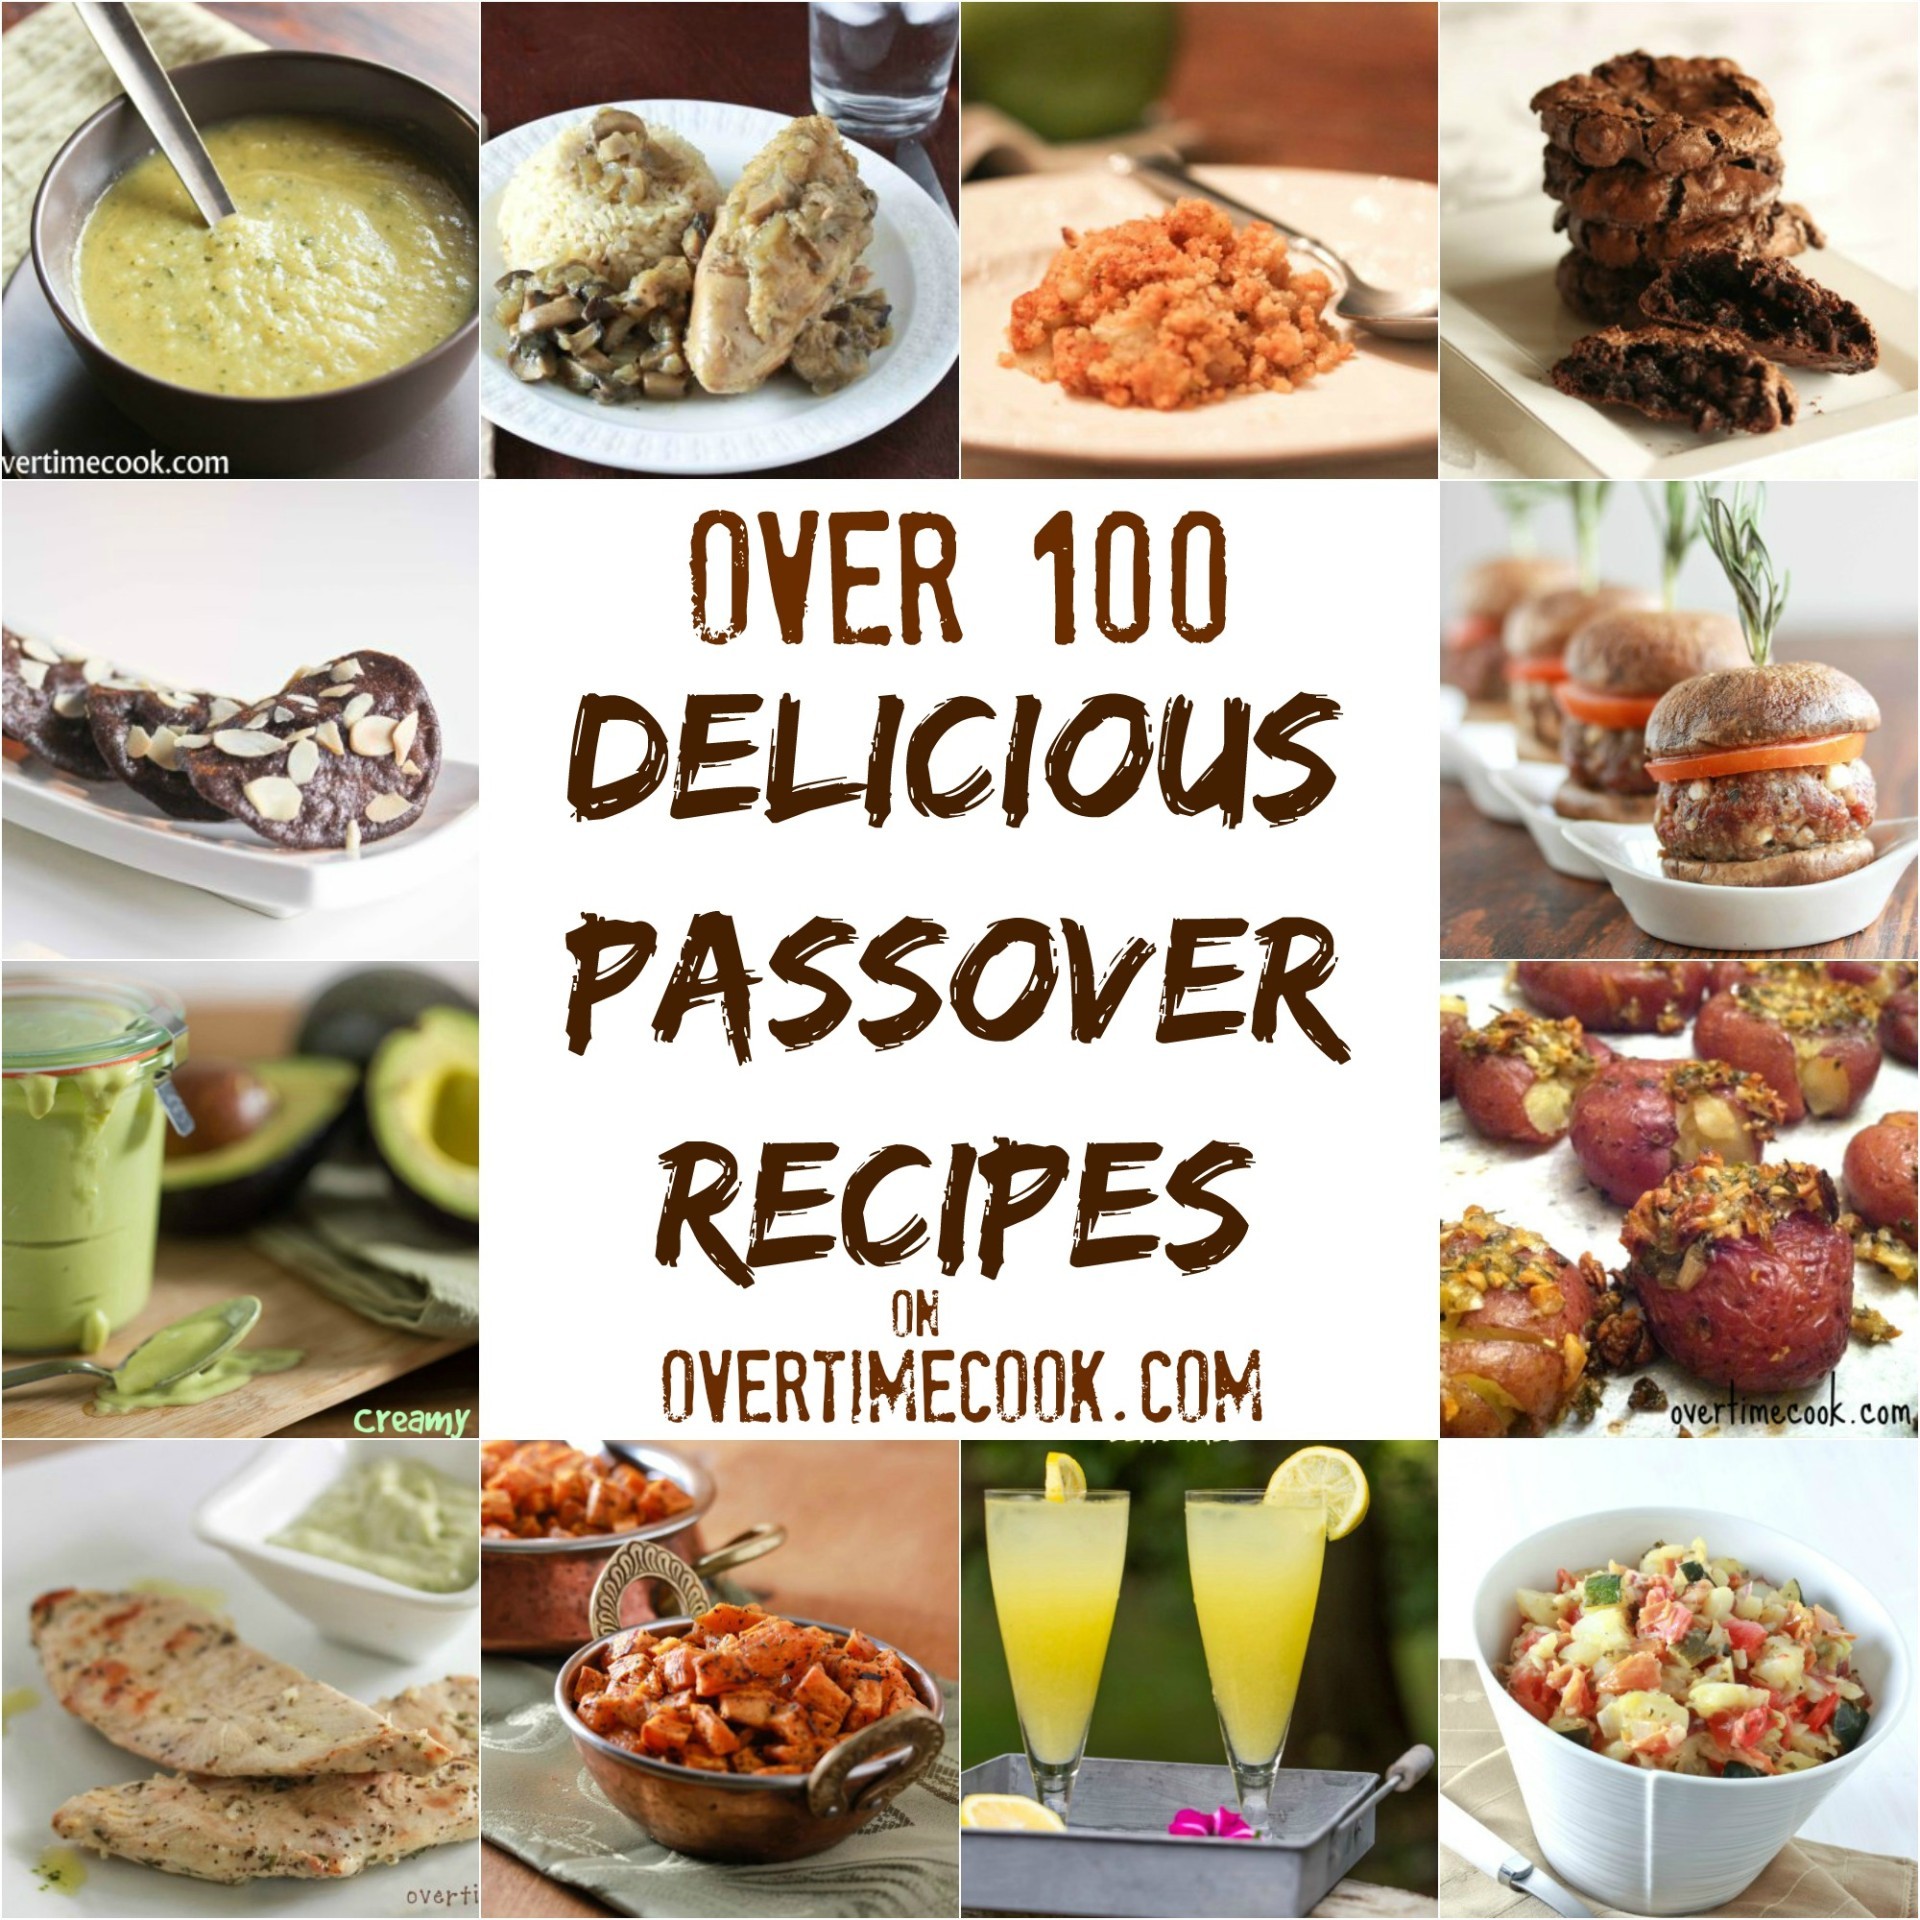 over 100 delicious passover recipes - overtime cook